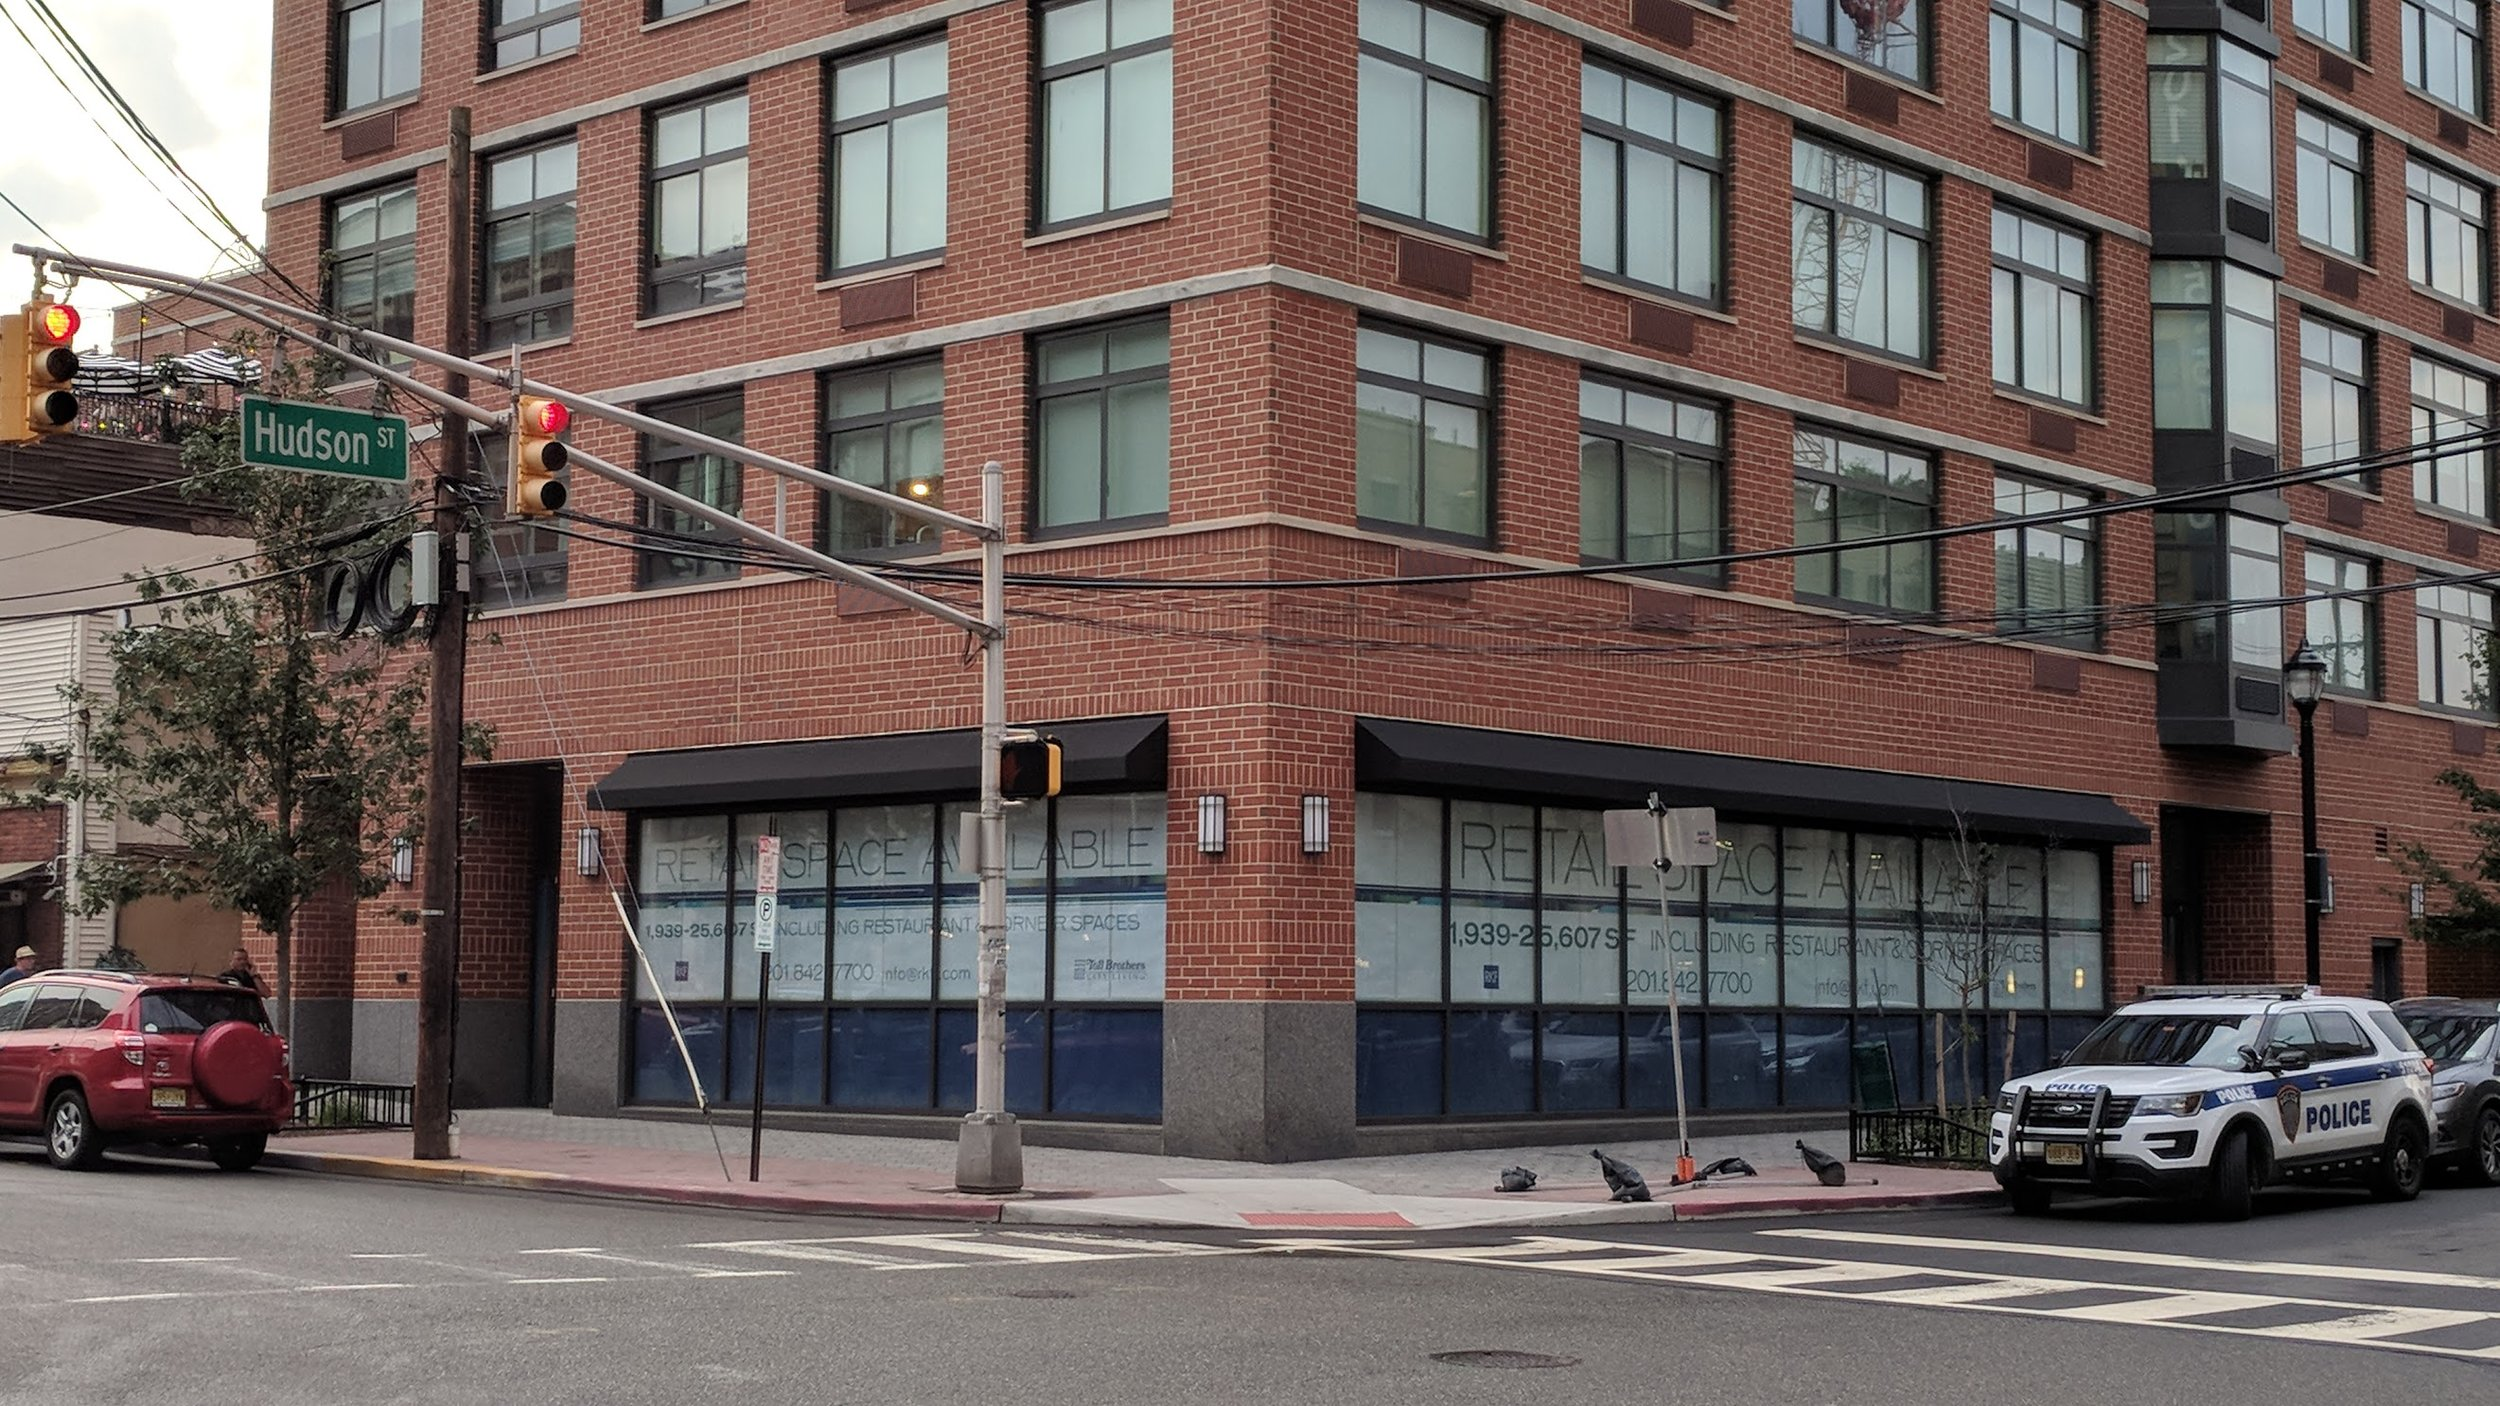 A new building in Hoboken with the ground floor retail (2,000 to 25,000 square feet)sitting vacant.